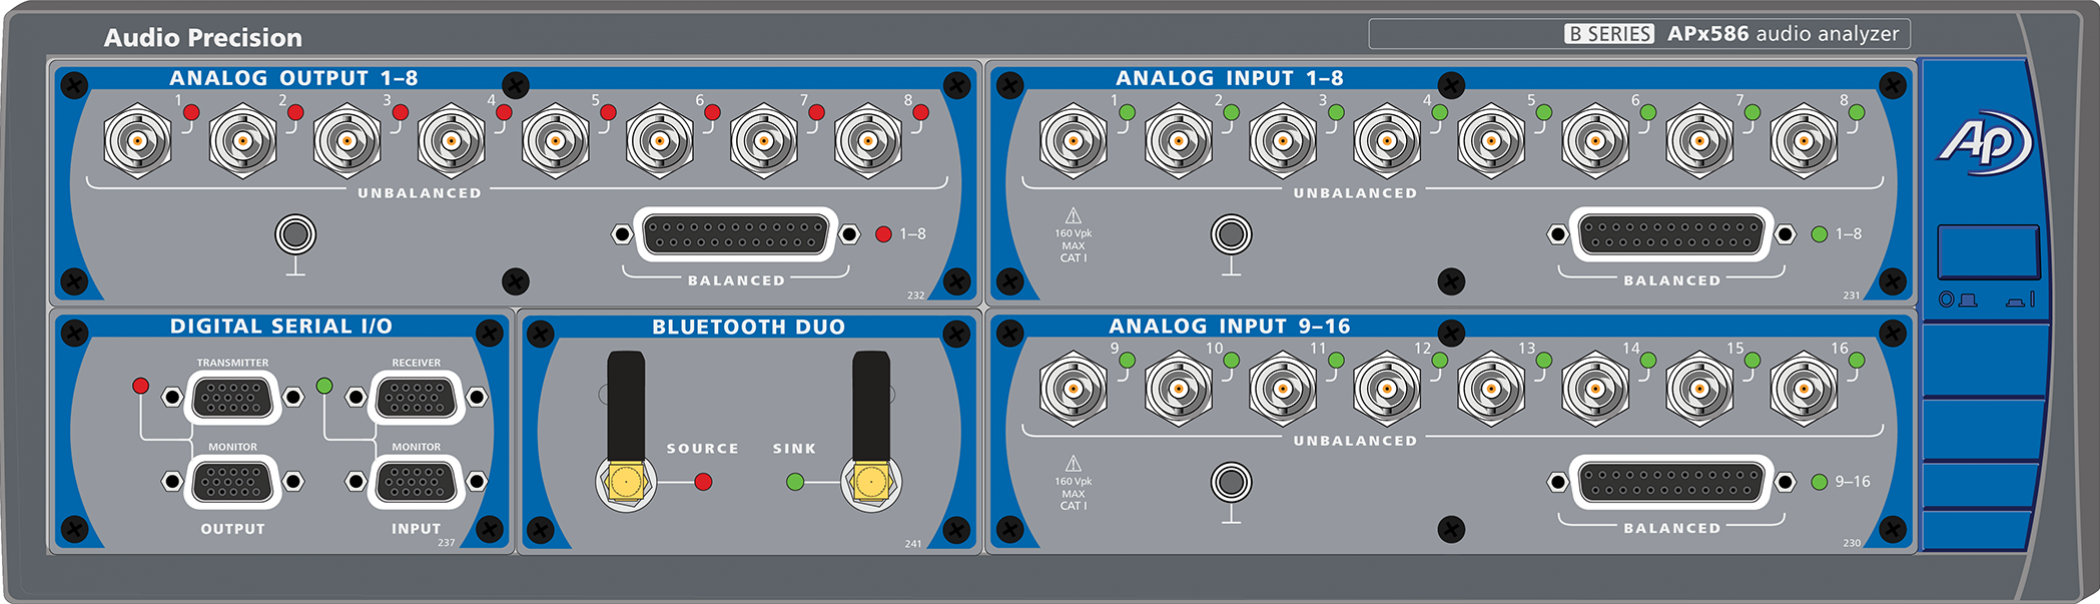 APx Series Audio Analyzers Overview | Audio Precision©